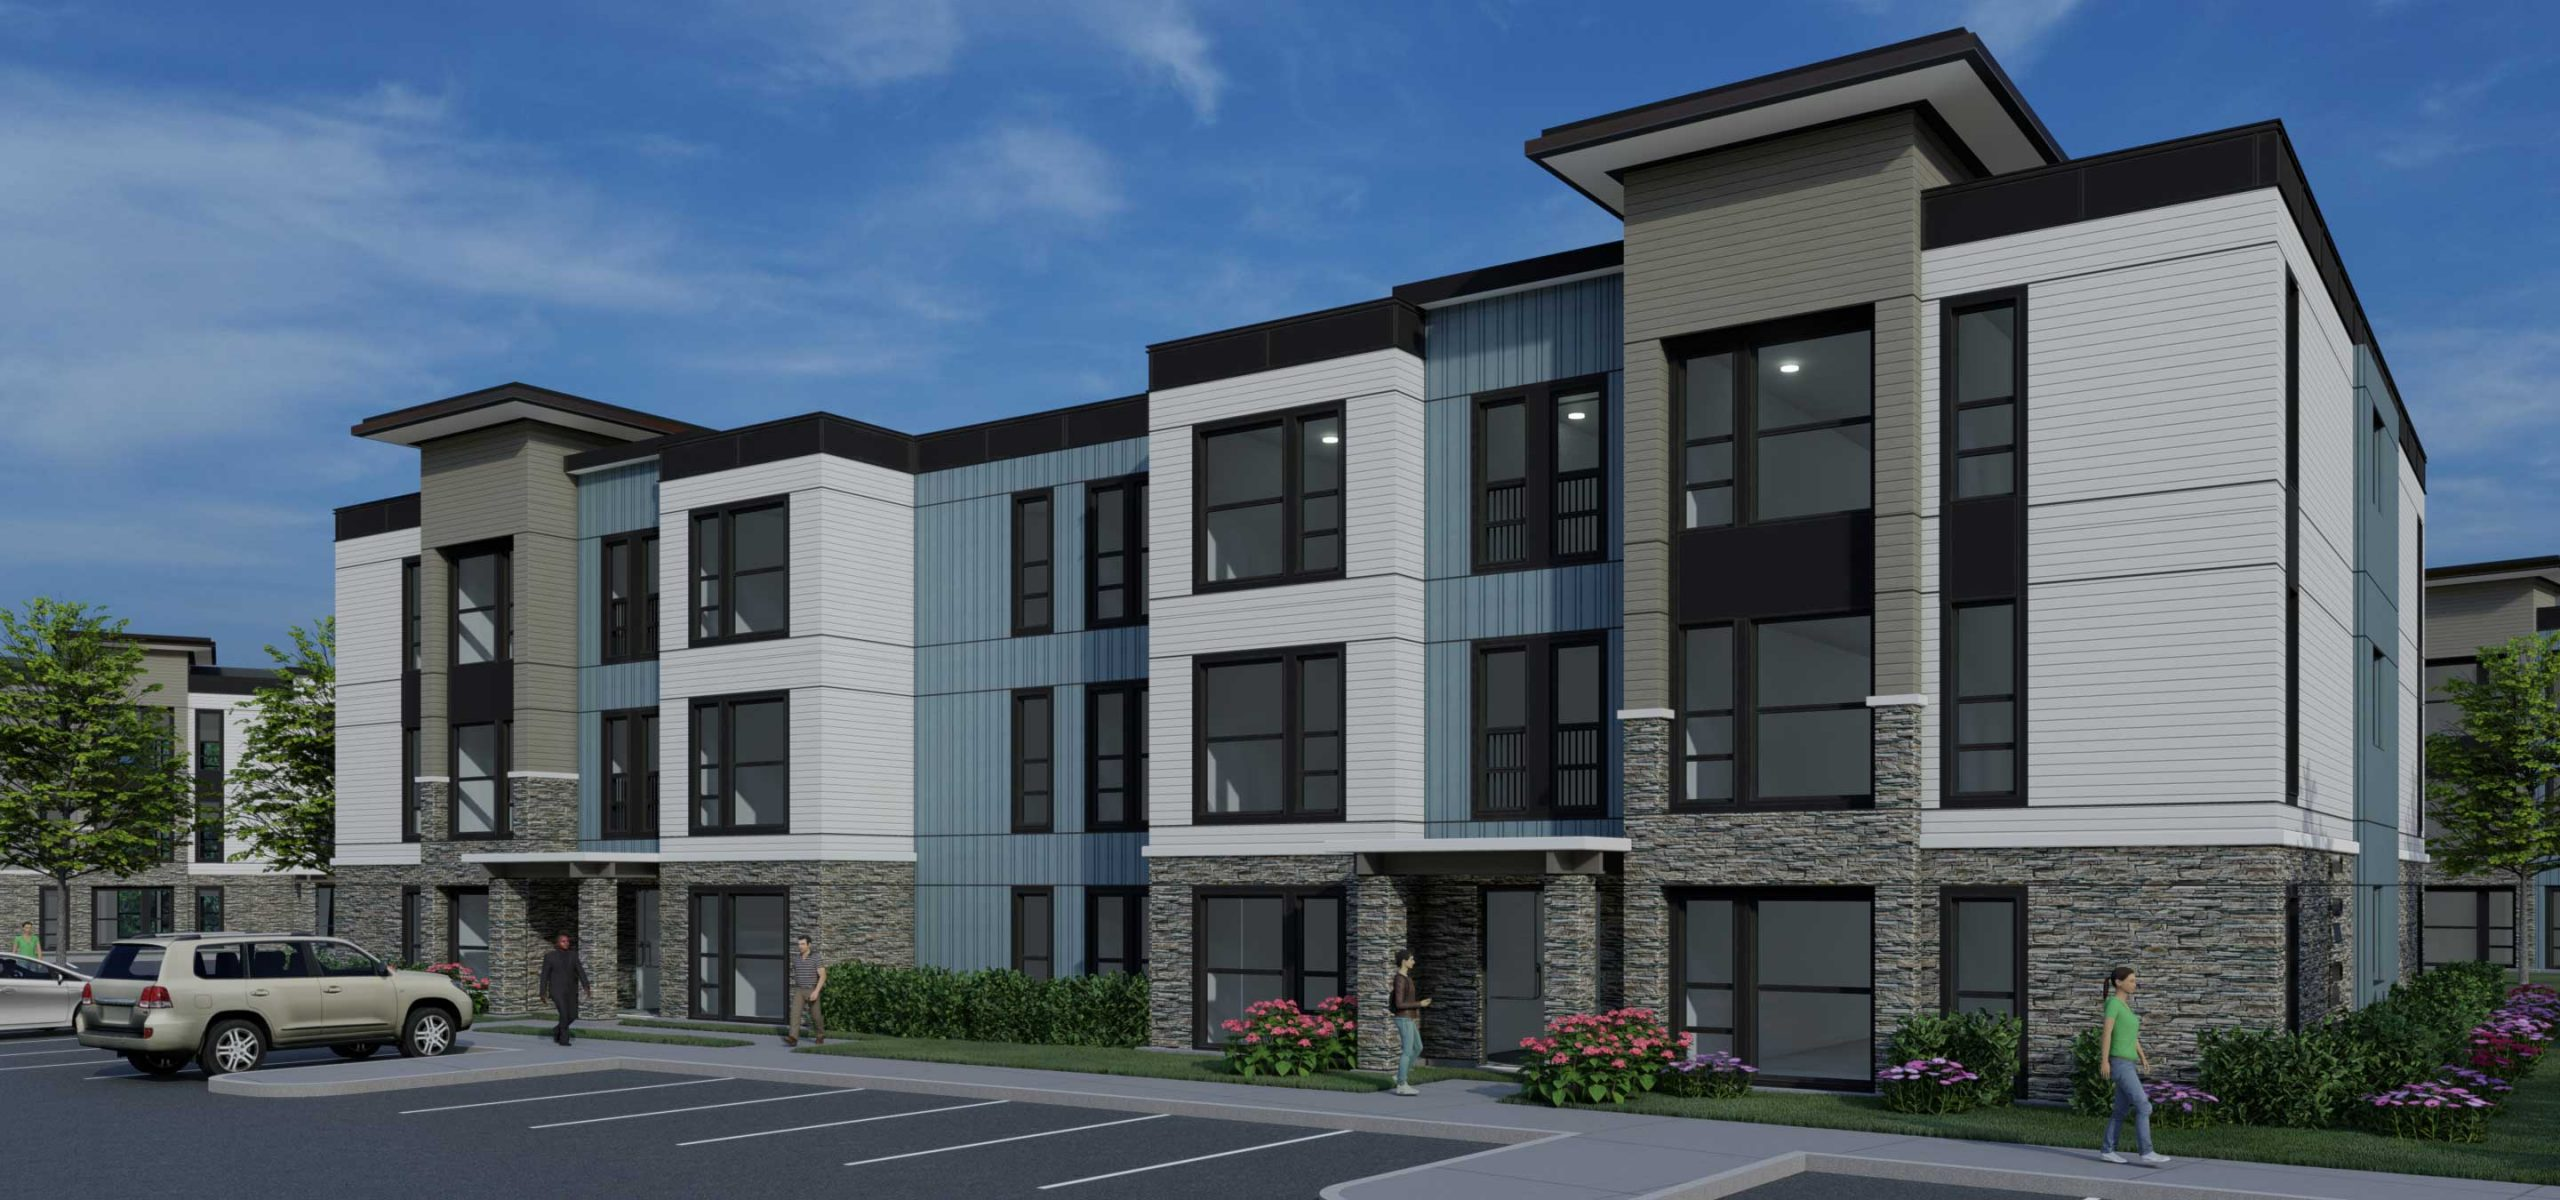 Front entrance rendering of Lemos Pointe garden style apartment complex